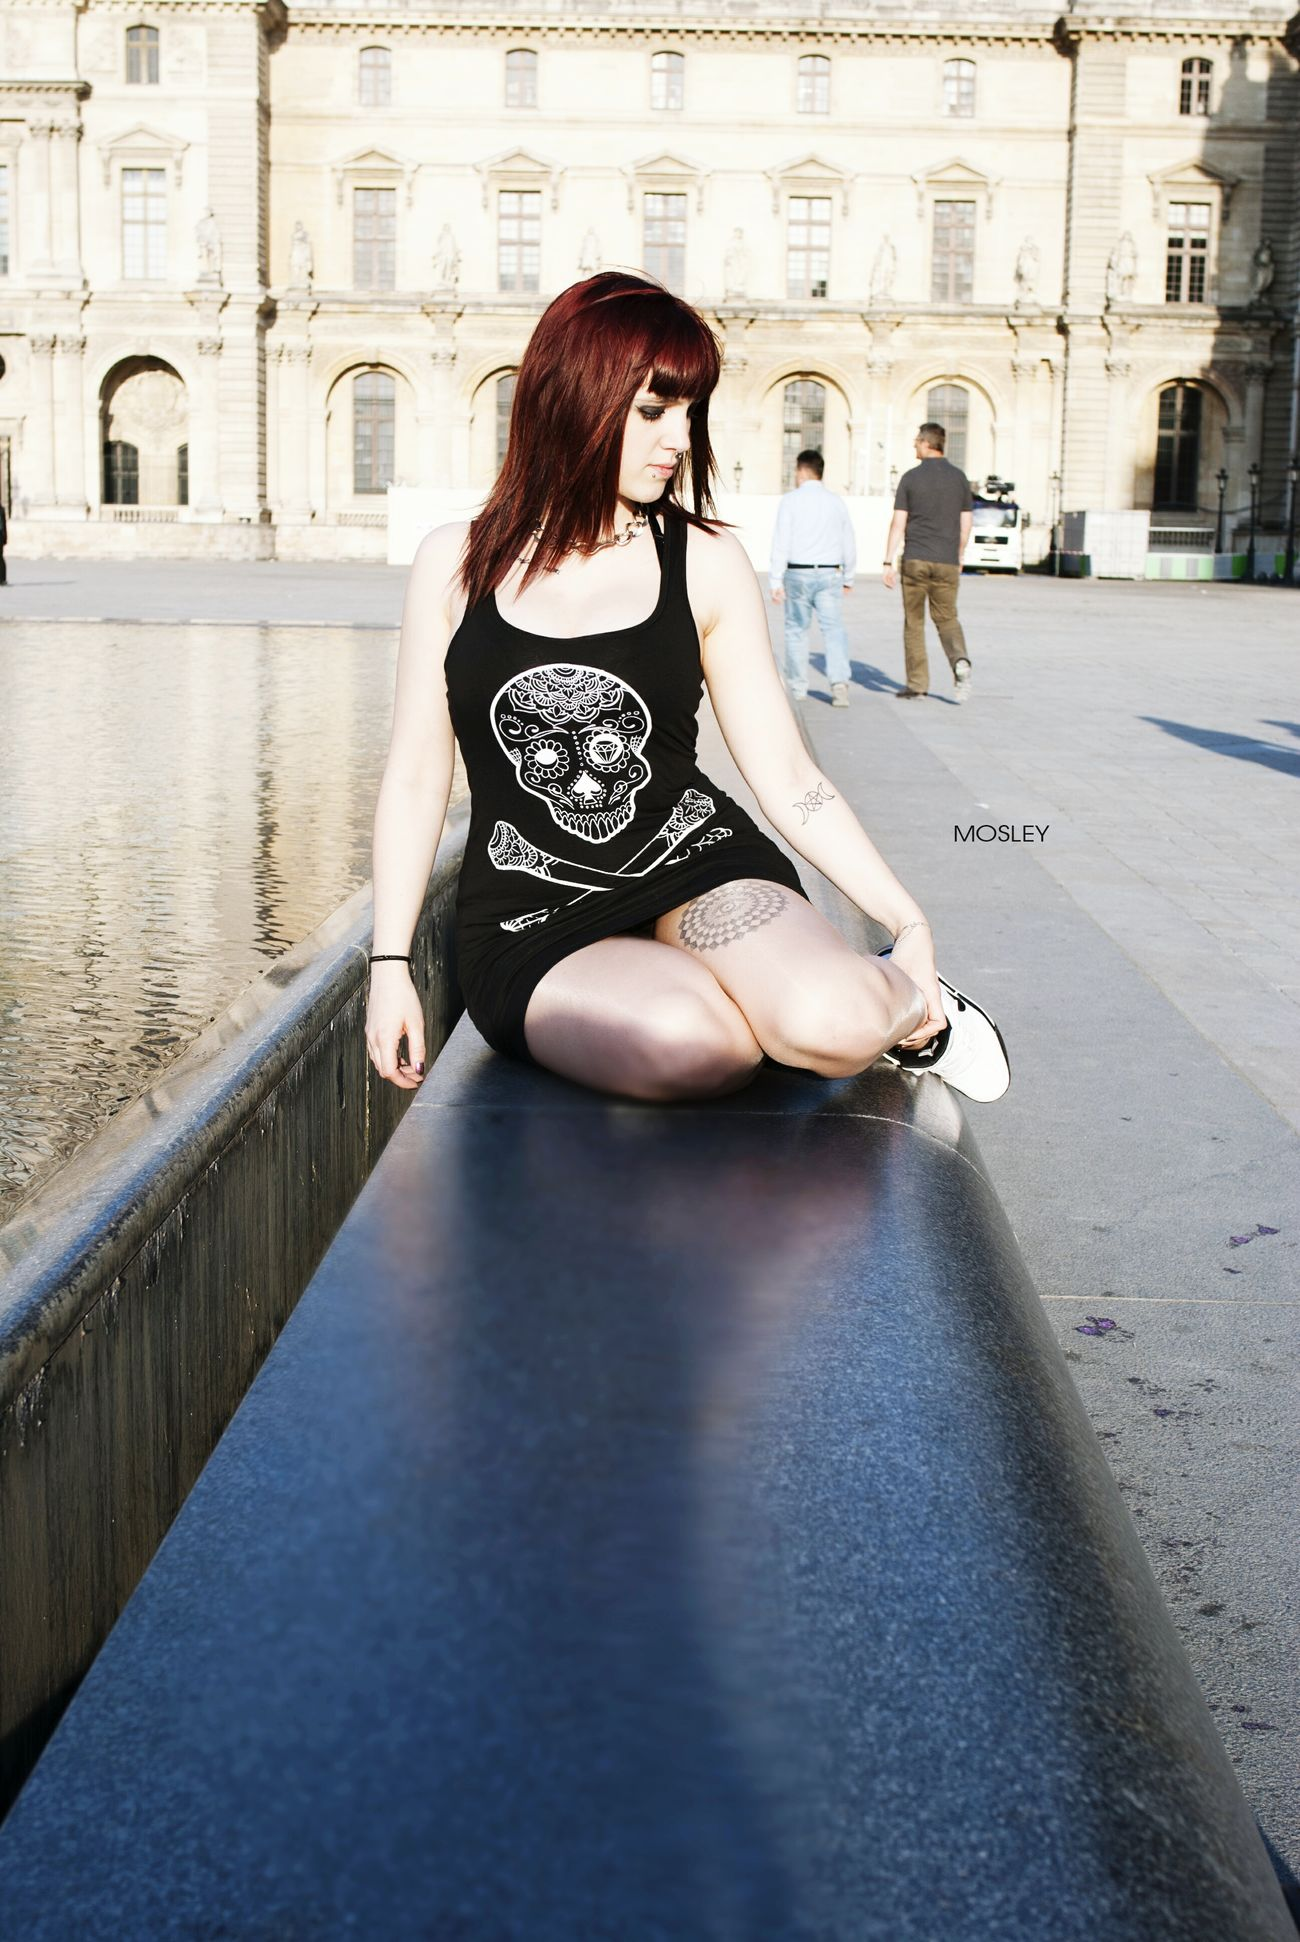 Paris Modeling Model Hello World Inked Girl Red Hair Frenchmodel Relaxing That's Me Photography